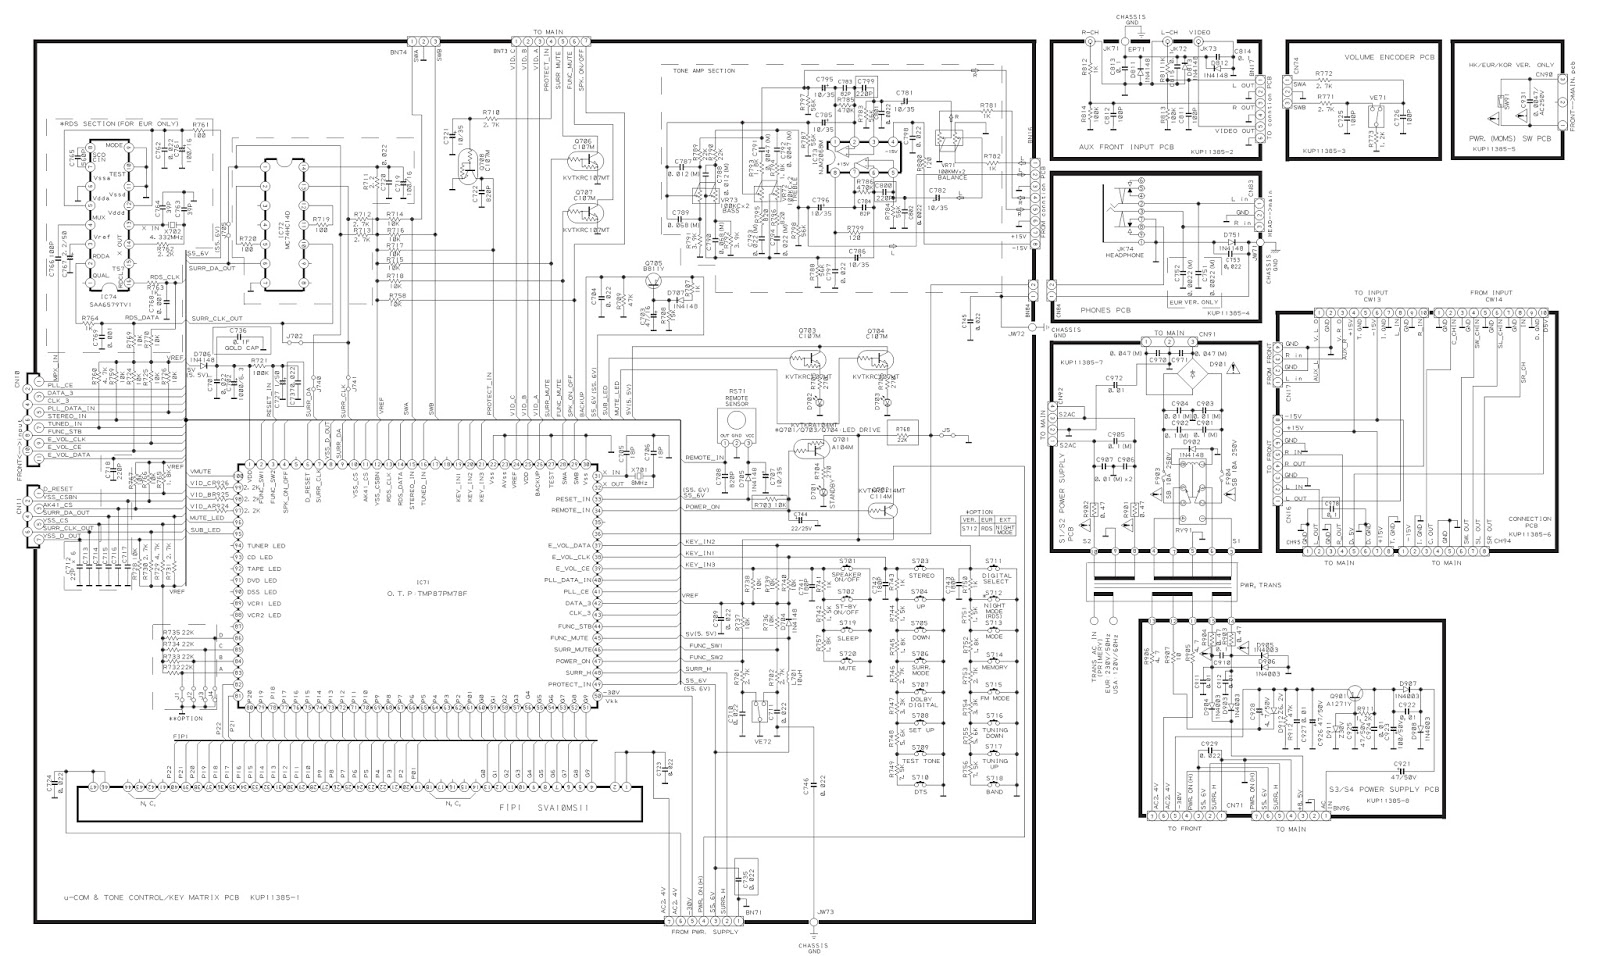 teac ag d9260 digital home theater system  u2013 schematic diagram  circuit diagram